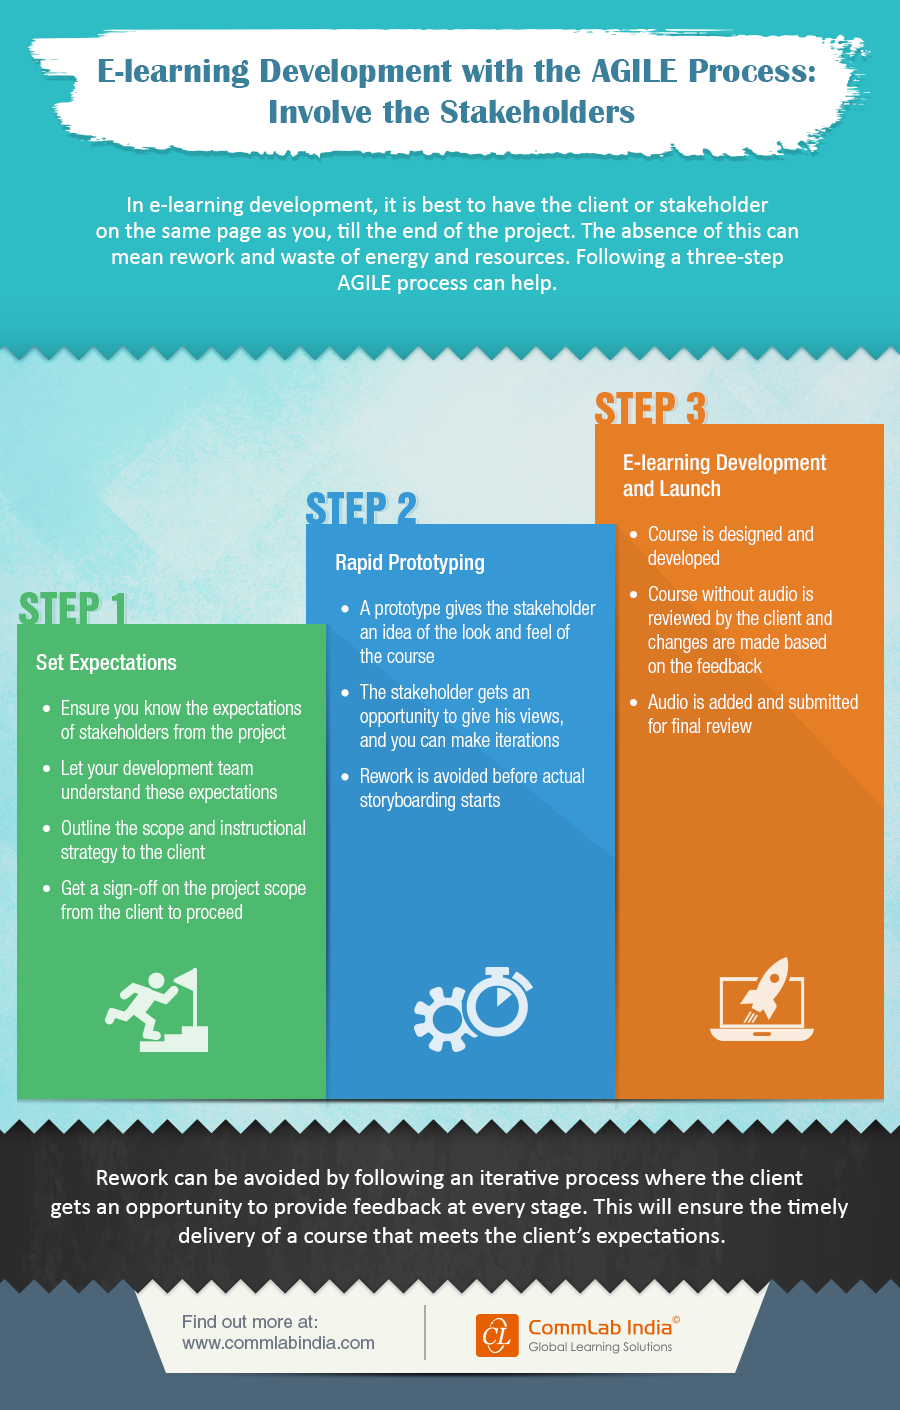 E-learning Development with the AGILE Process: Involve the Stakeholders [Infographic]